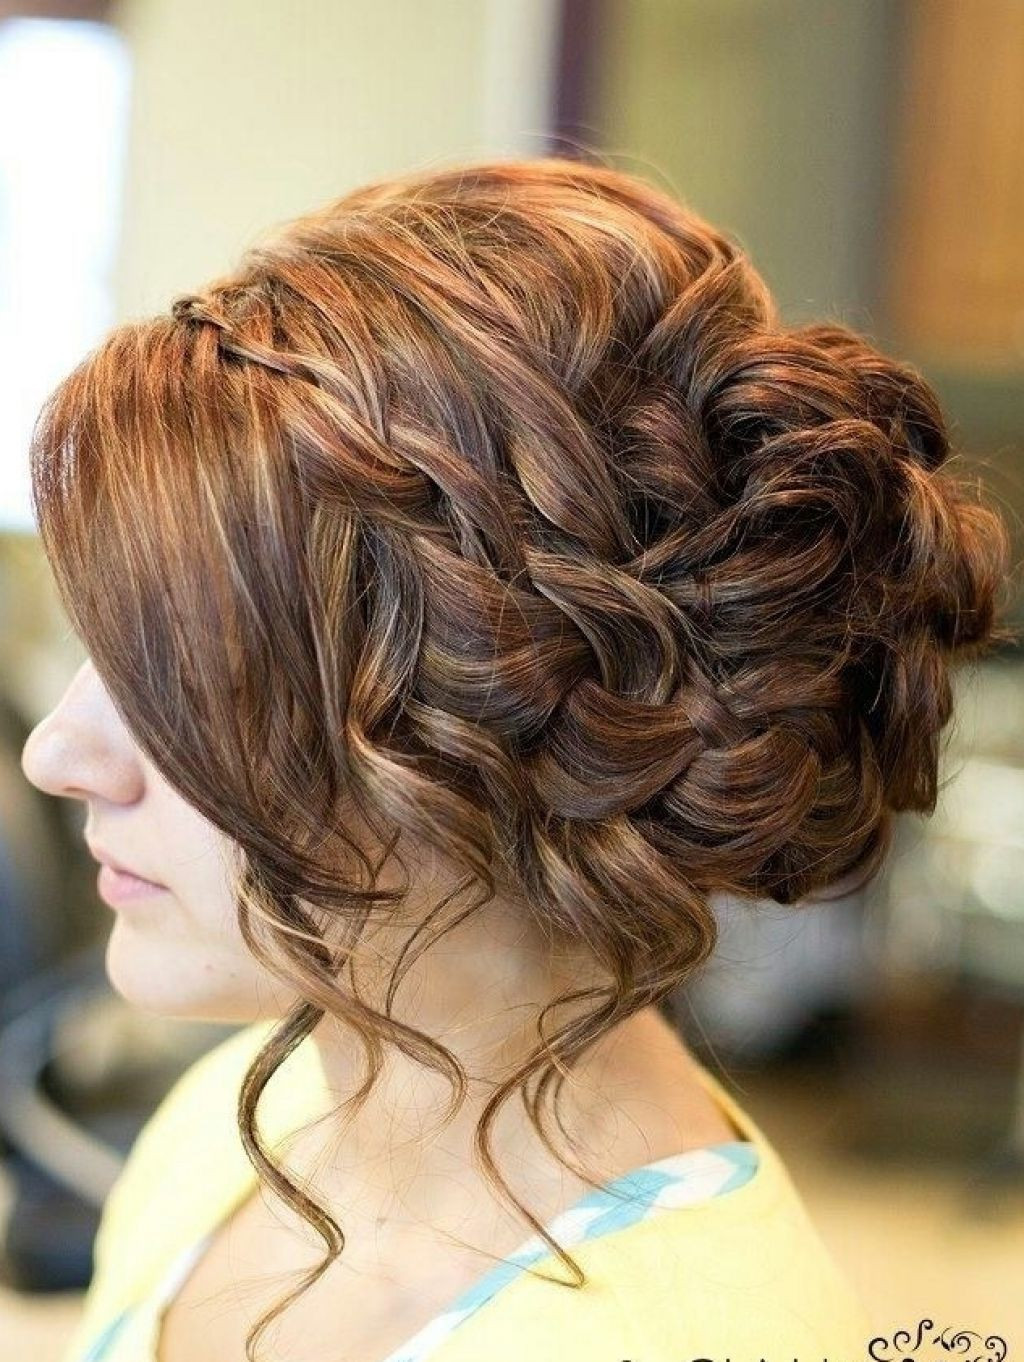 Updo Hairstyles For Prom Black Hair  14 Prom Hairstyles for Long Hair that are Simply Adorable